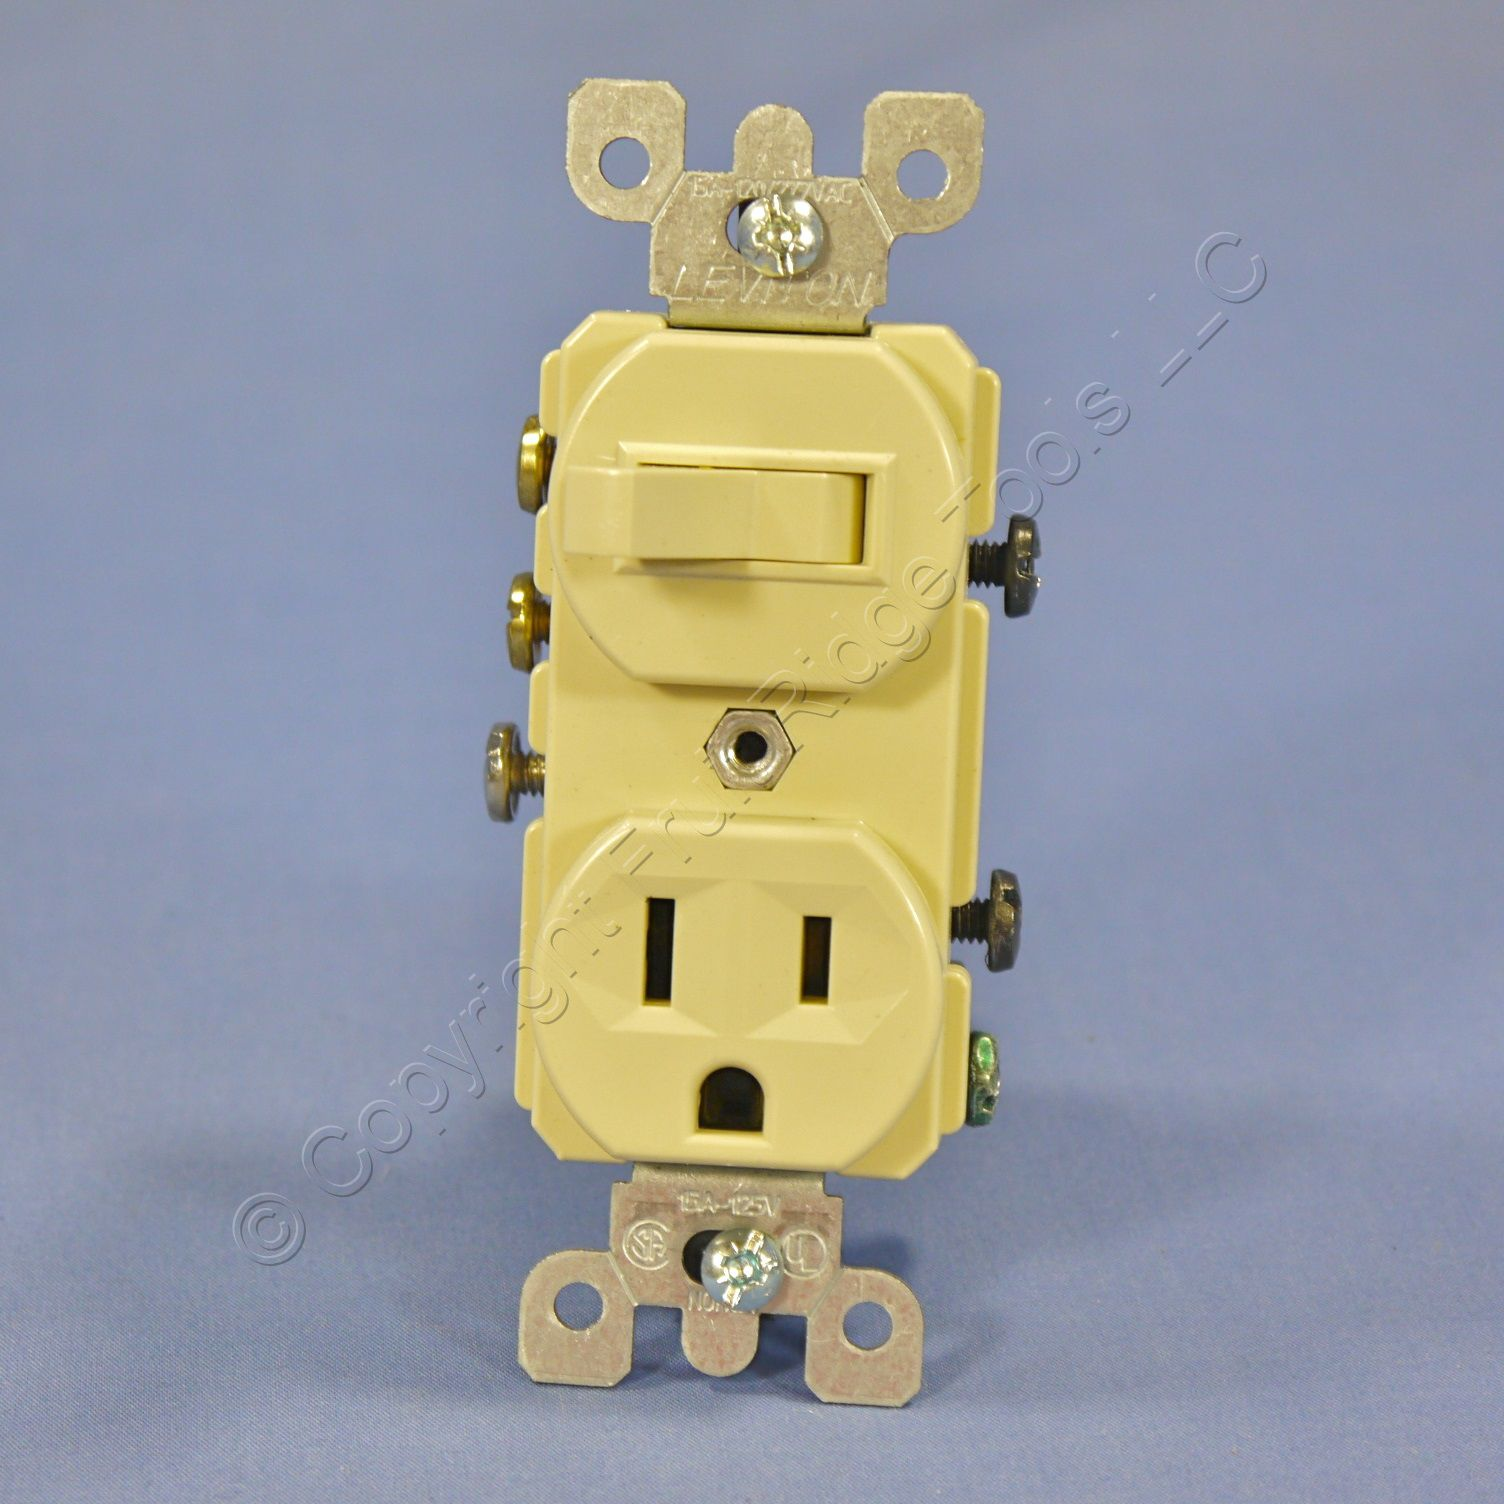 3 way outlet homelite 360 chainsaw parts diagram leviton ivory combination light switch